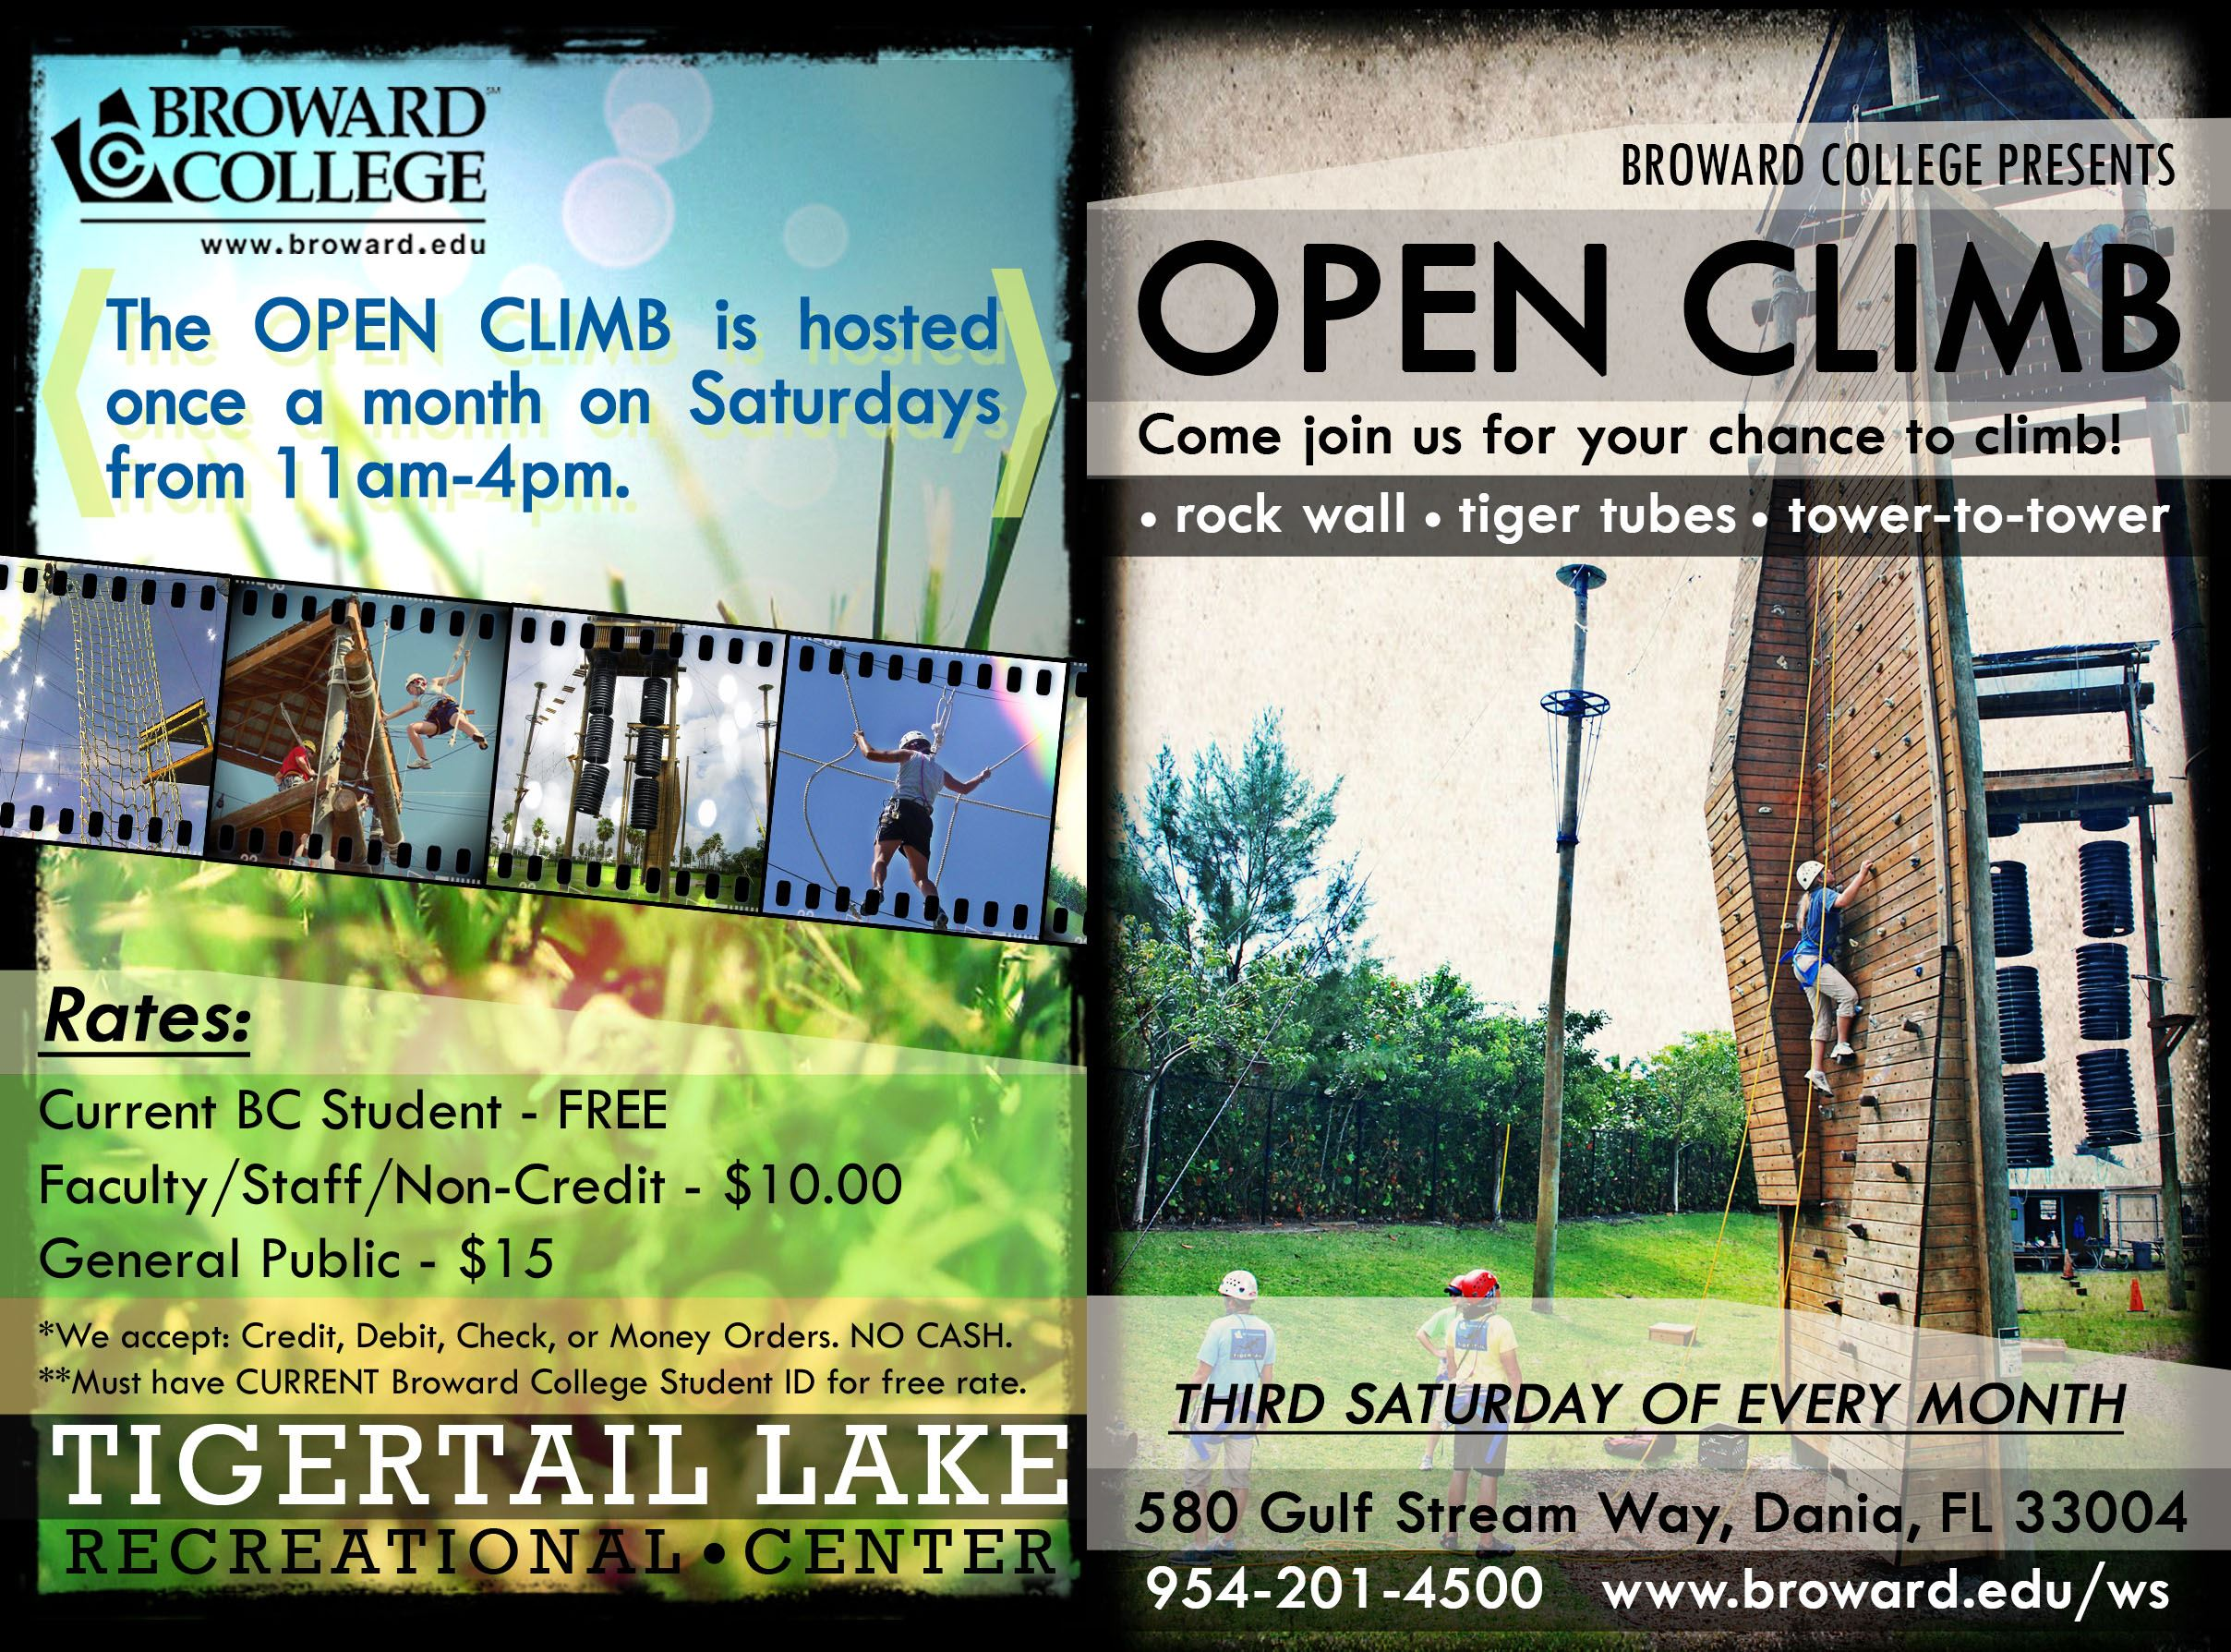 Open_Climb Tigertail Lake Center Dania Beach